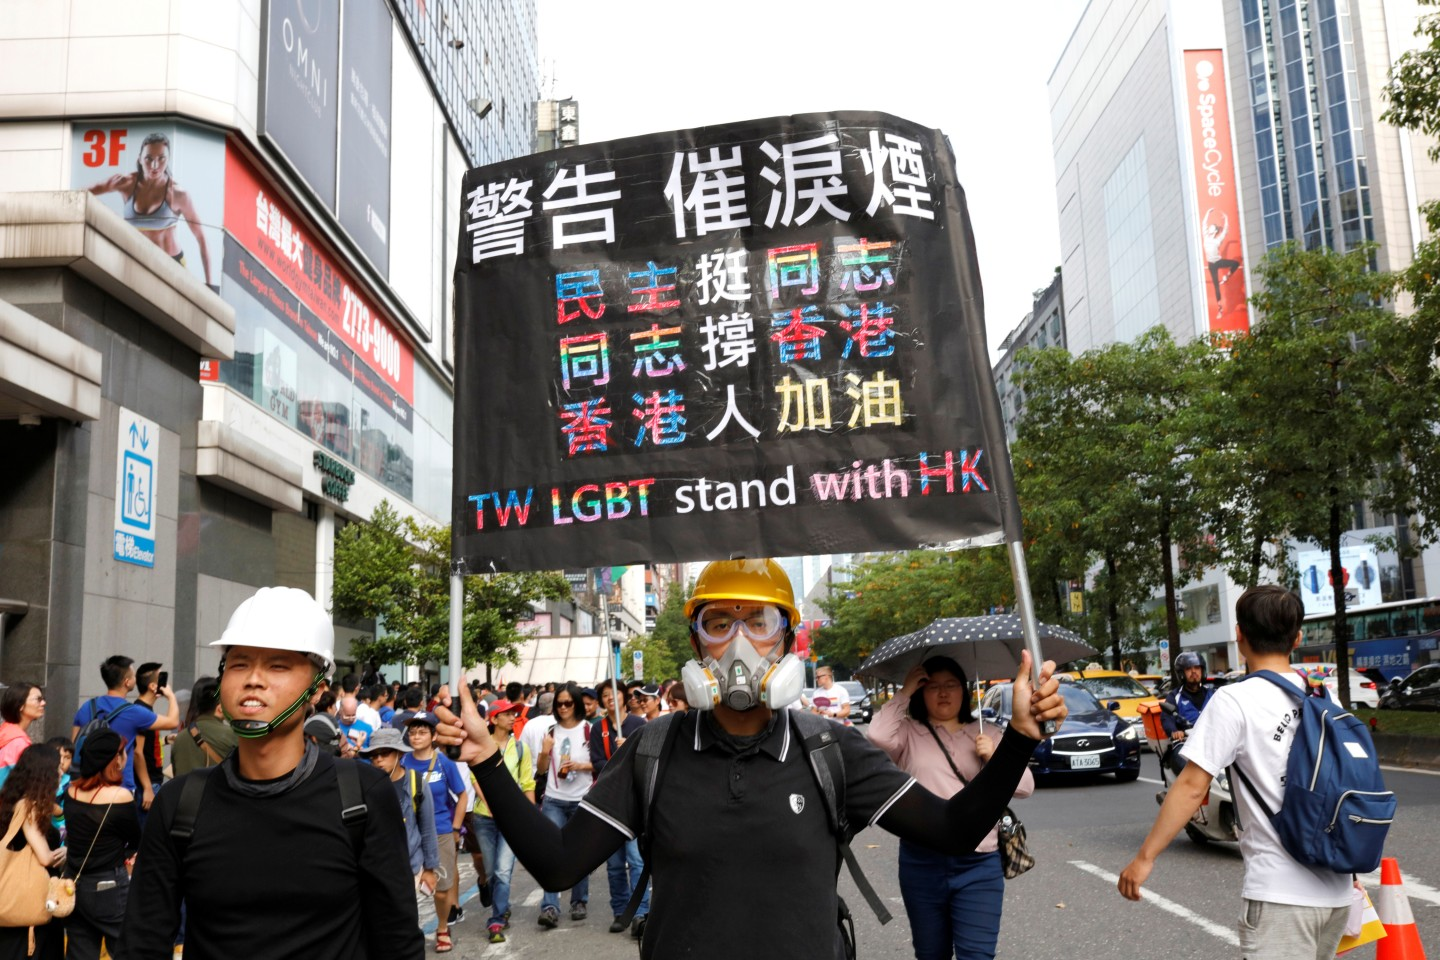 A participant holds a placard showing support for pro-democracy protests in Hong Kong, during the LGBT Pride parade in Taipei, Taiwan October 26, 2019. REUTERS/Eason Lam